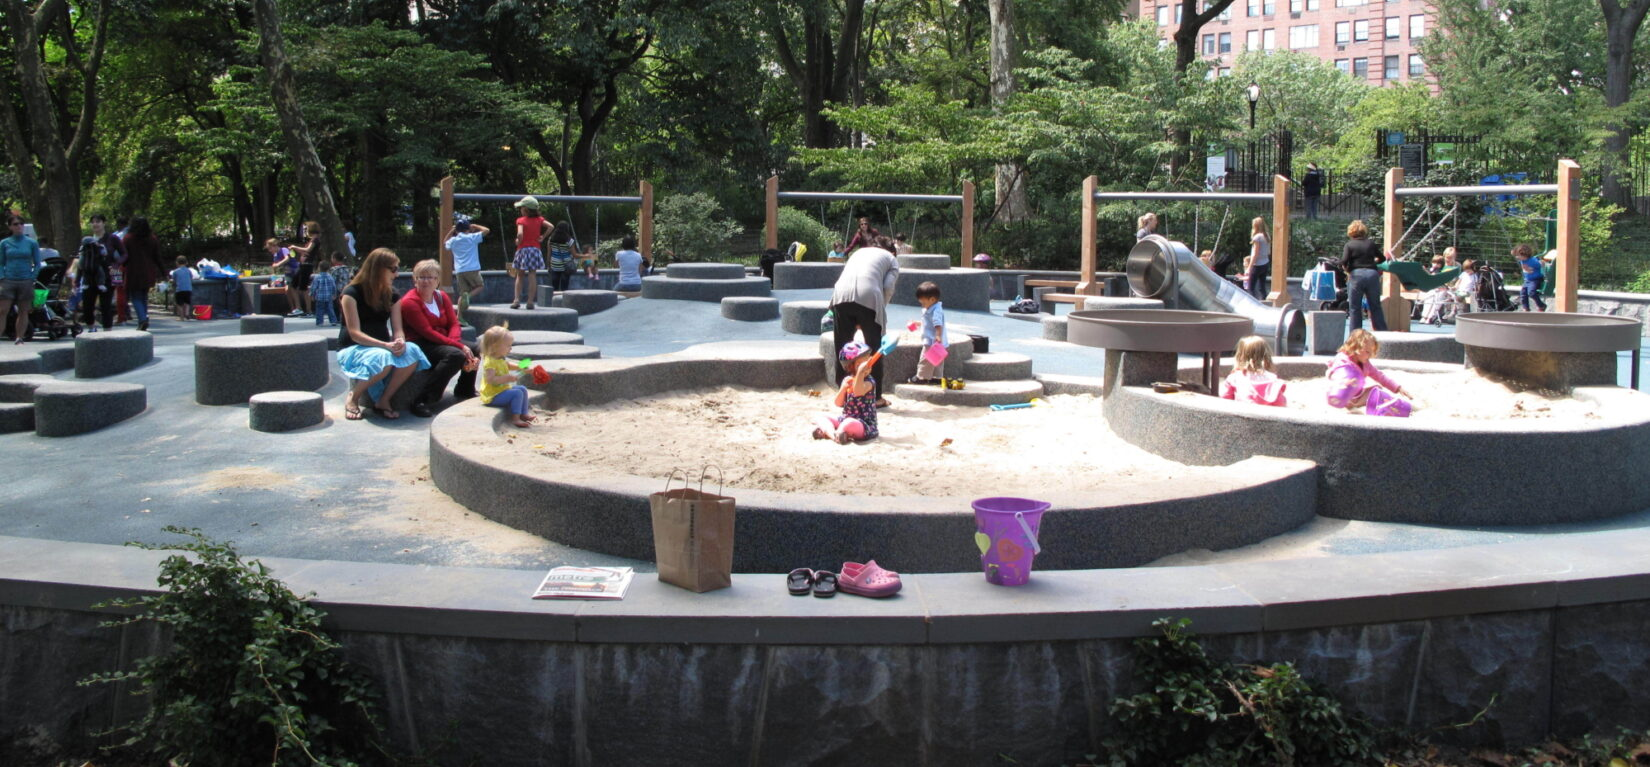 Toddlers enjoy playing in the sand in summer